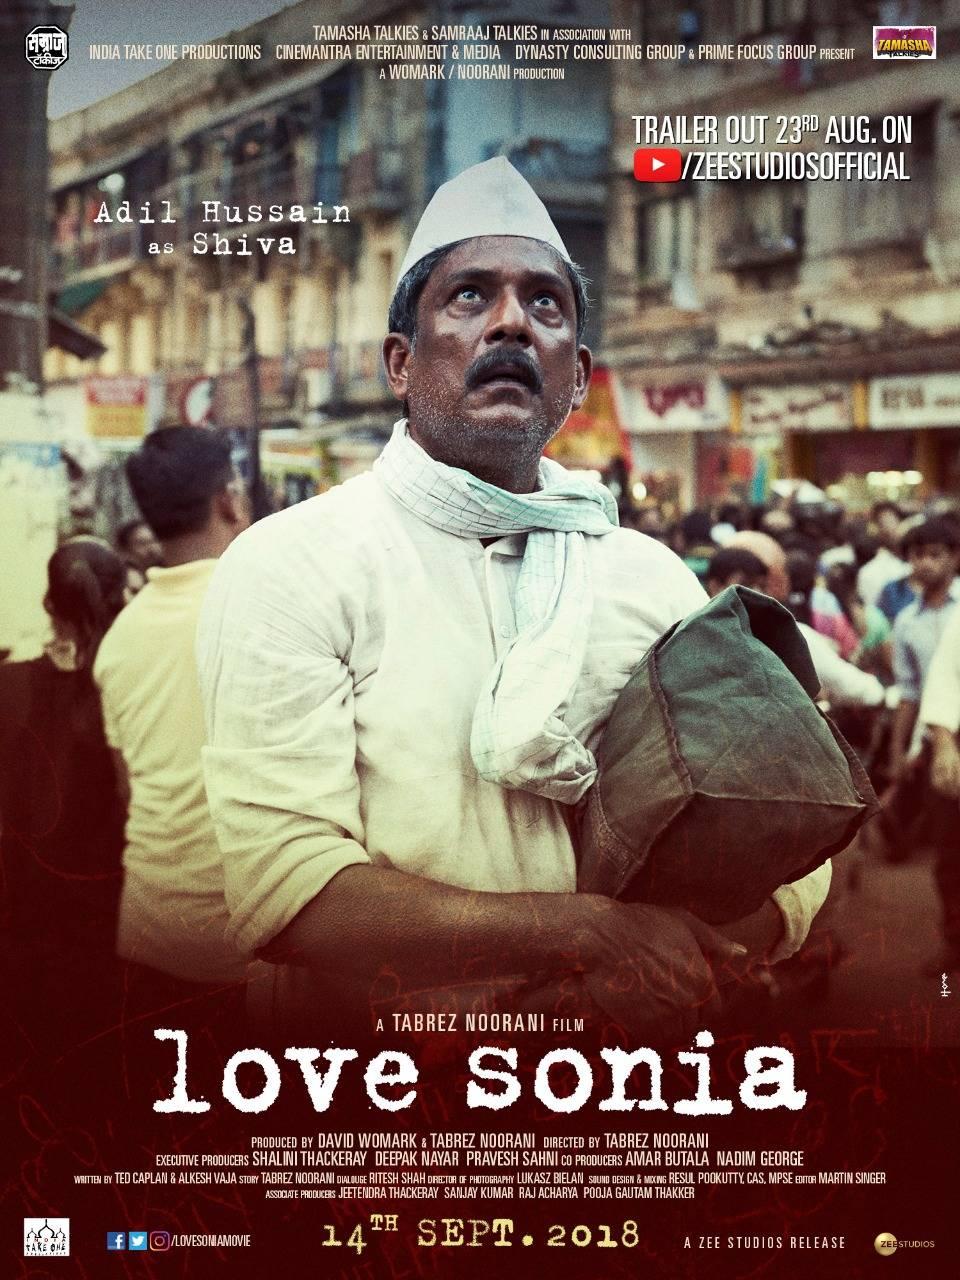 Love Sonia' posters reveal a unique cast of Hollywood and Bollywood